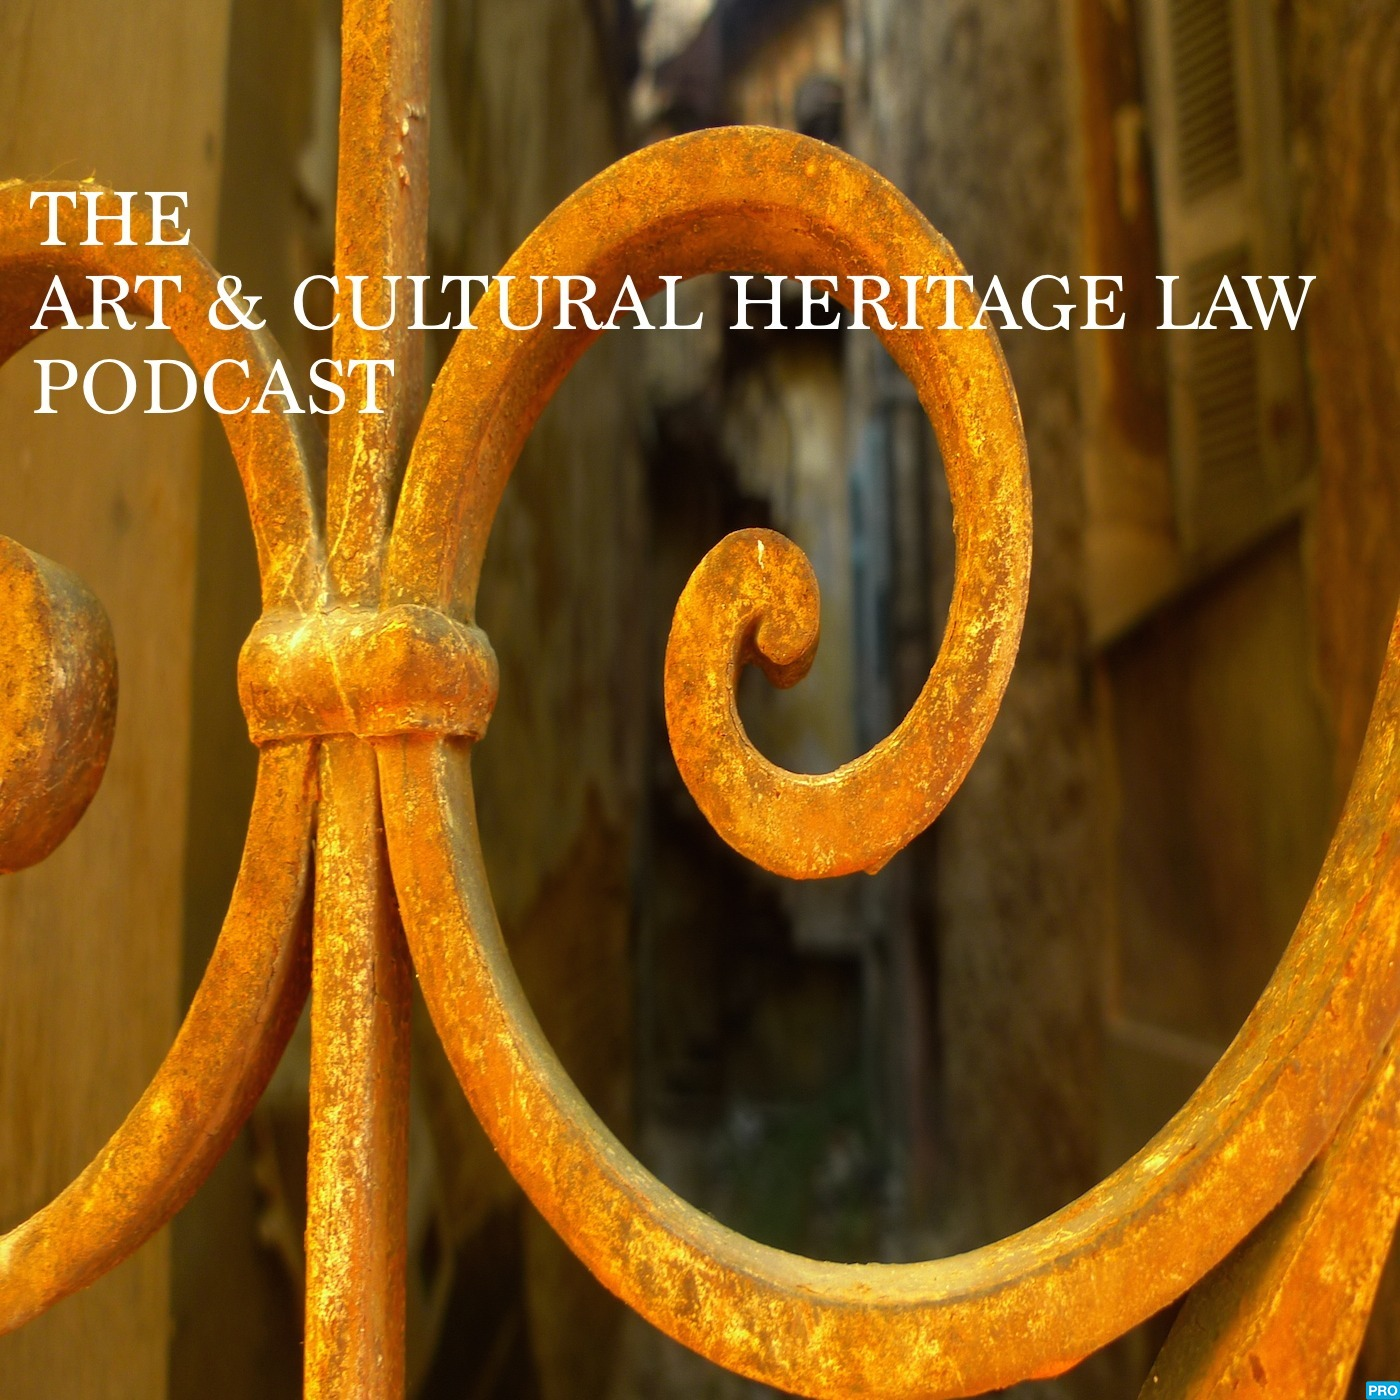 Art & Cultural Heritage Law Podcast